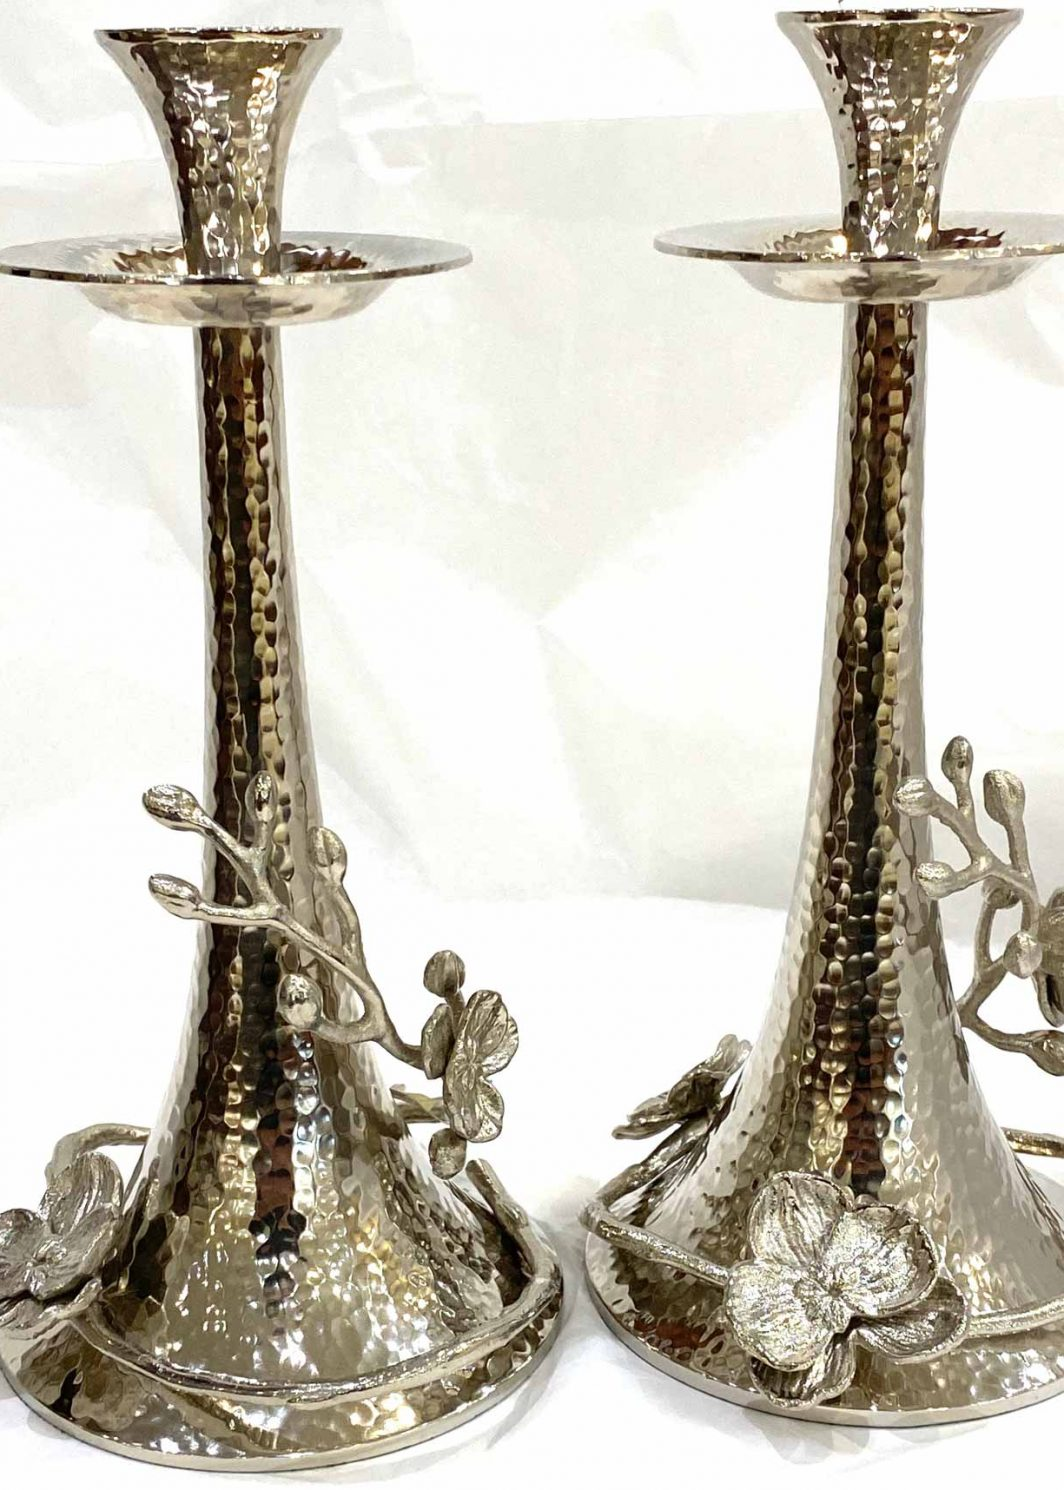 Michael Aram White Orchid Candle Holders